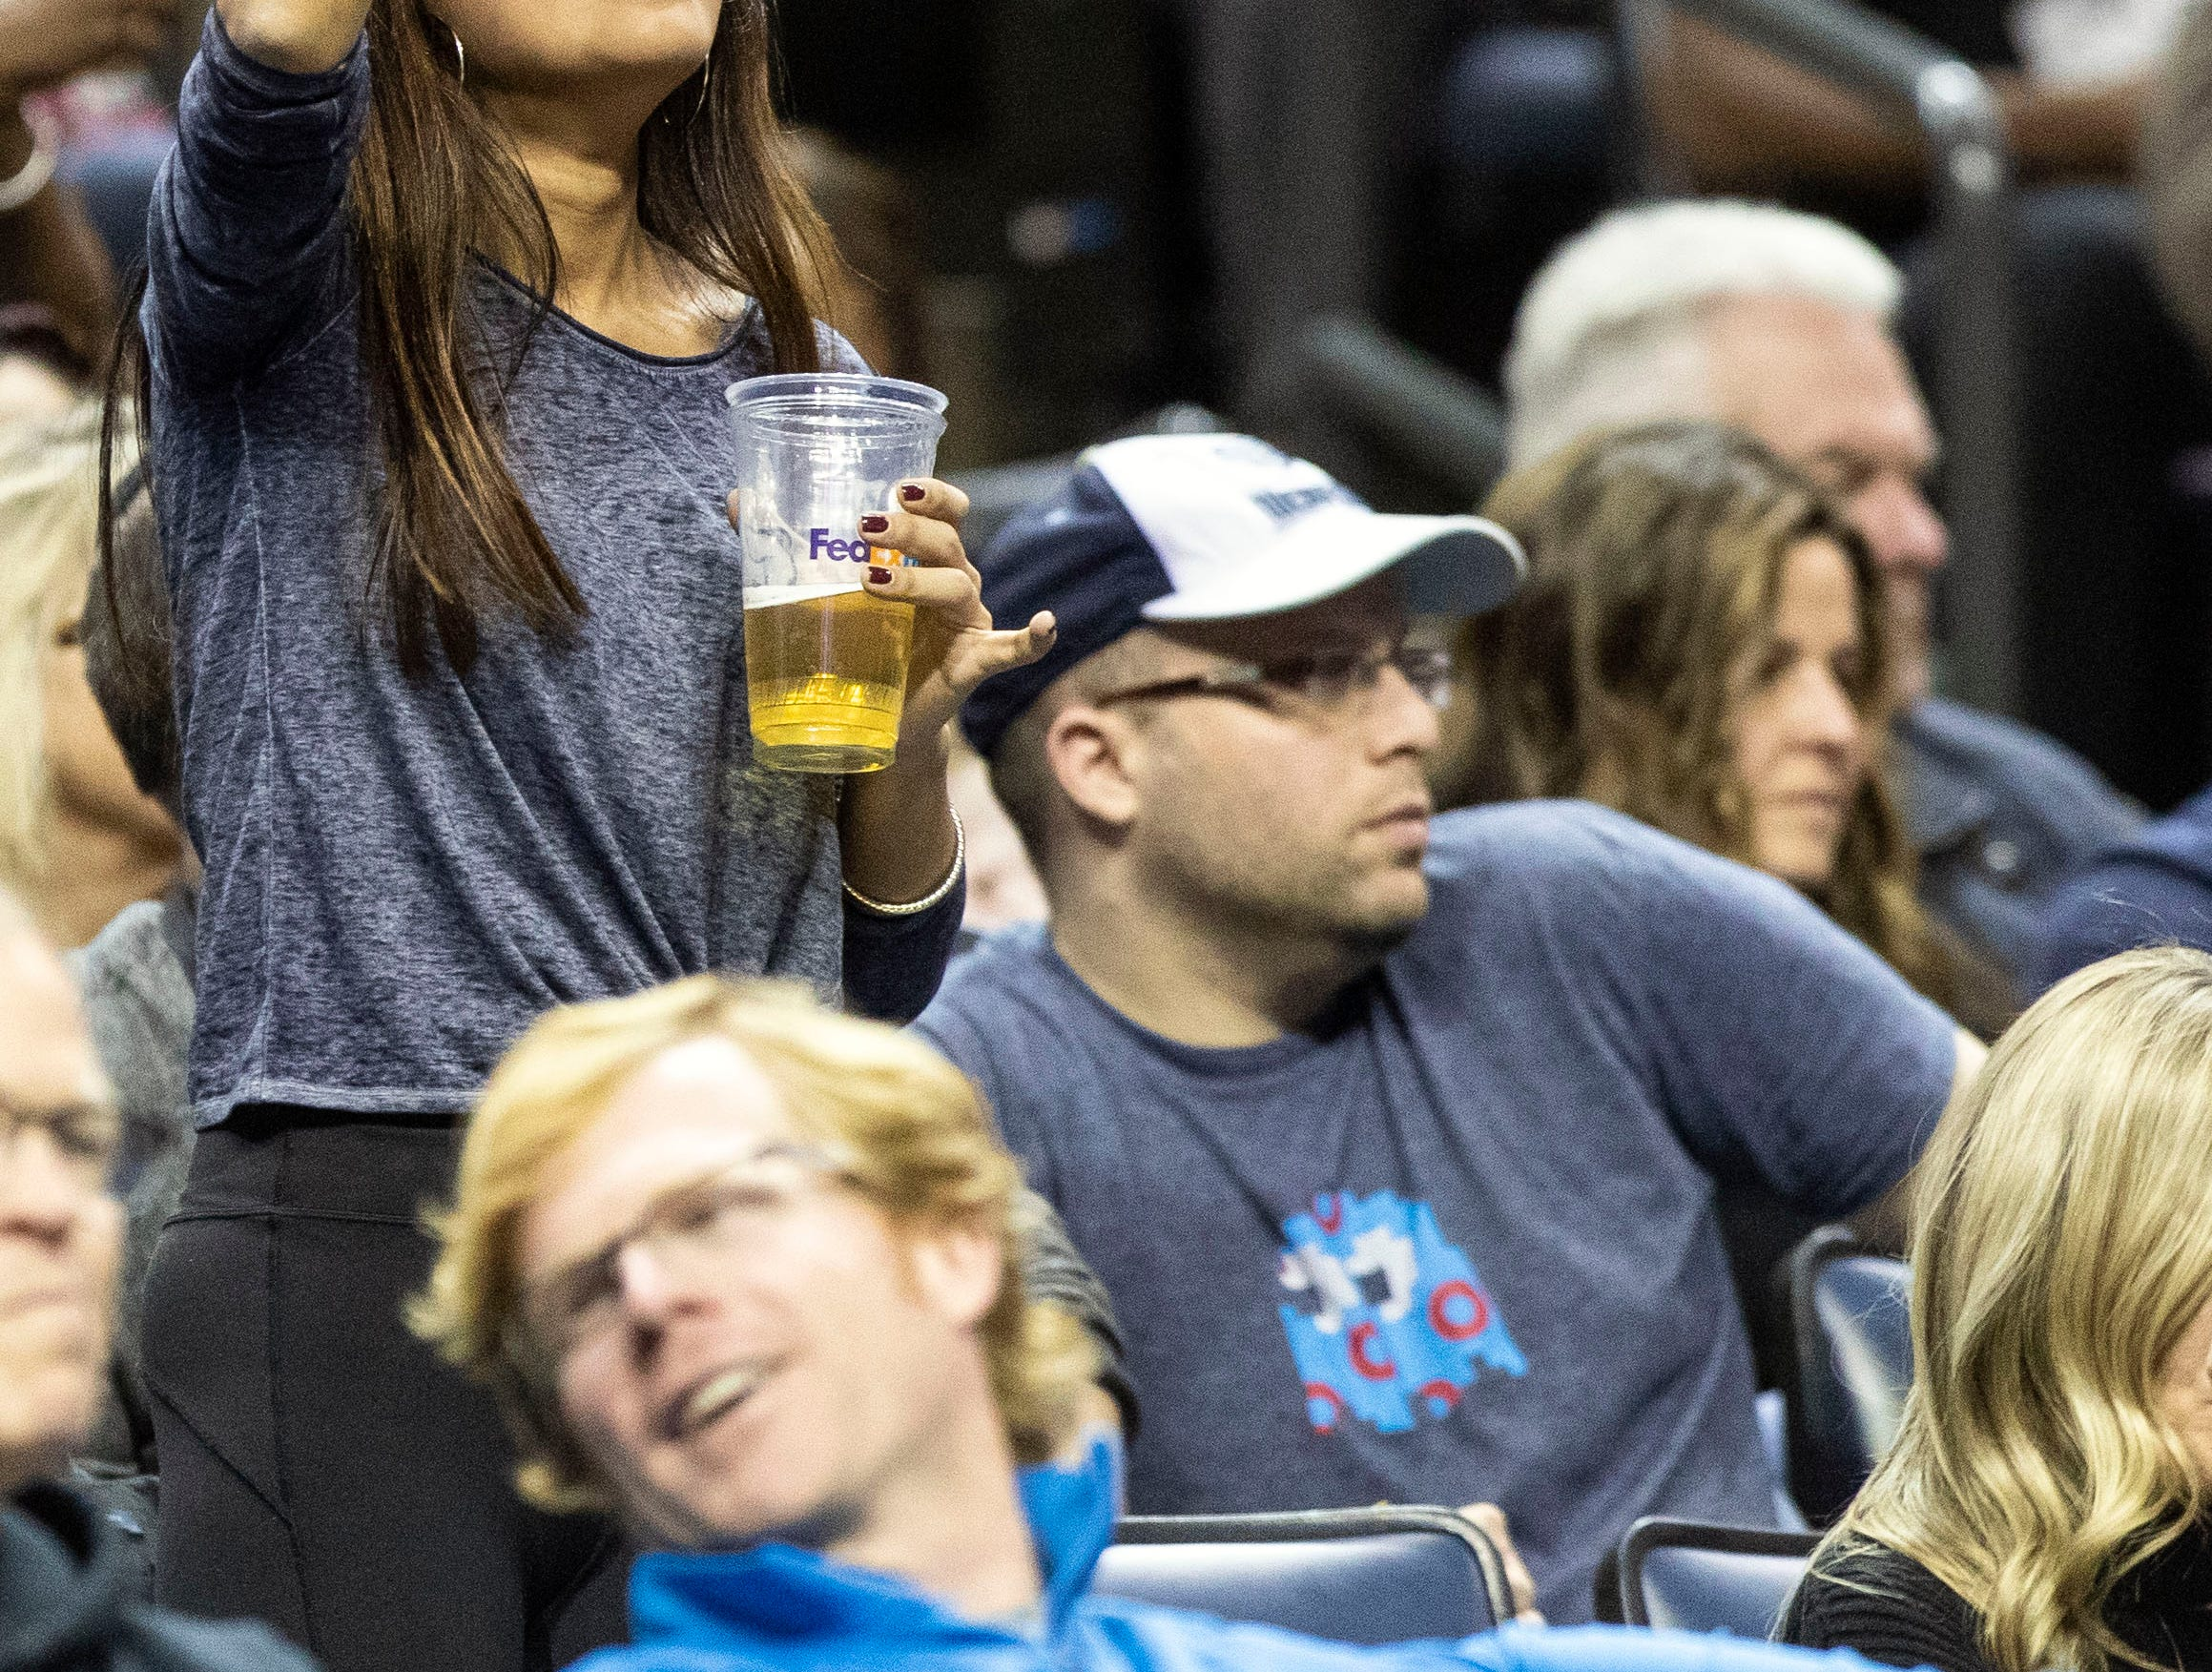 A Memphis Grizzles fan cheers in the stands during a NBA basketball game between the Memphis Grizzlies and the  Los Angeles Clippers in the Fedex Forum, Wednesday, Dec. 5, 2018.